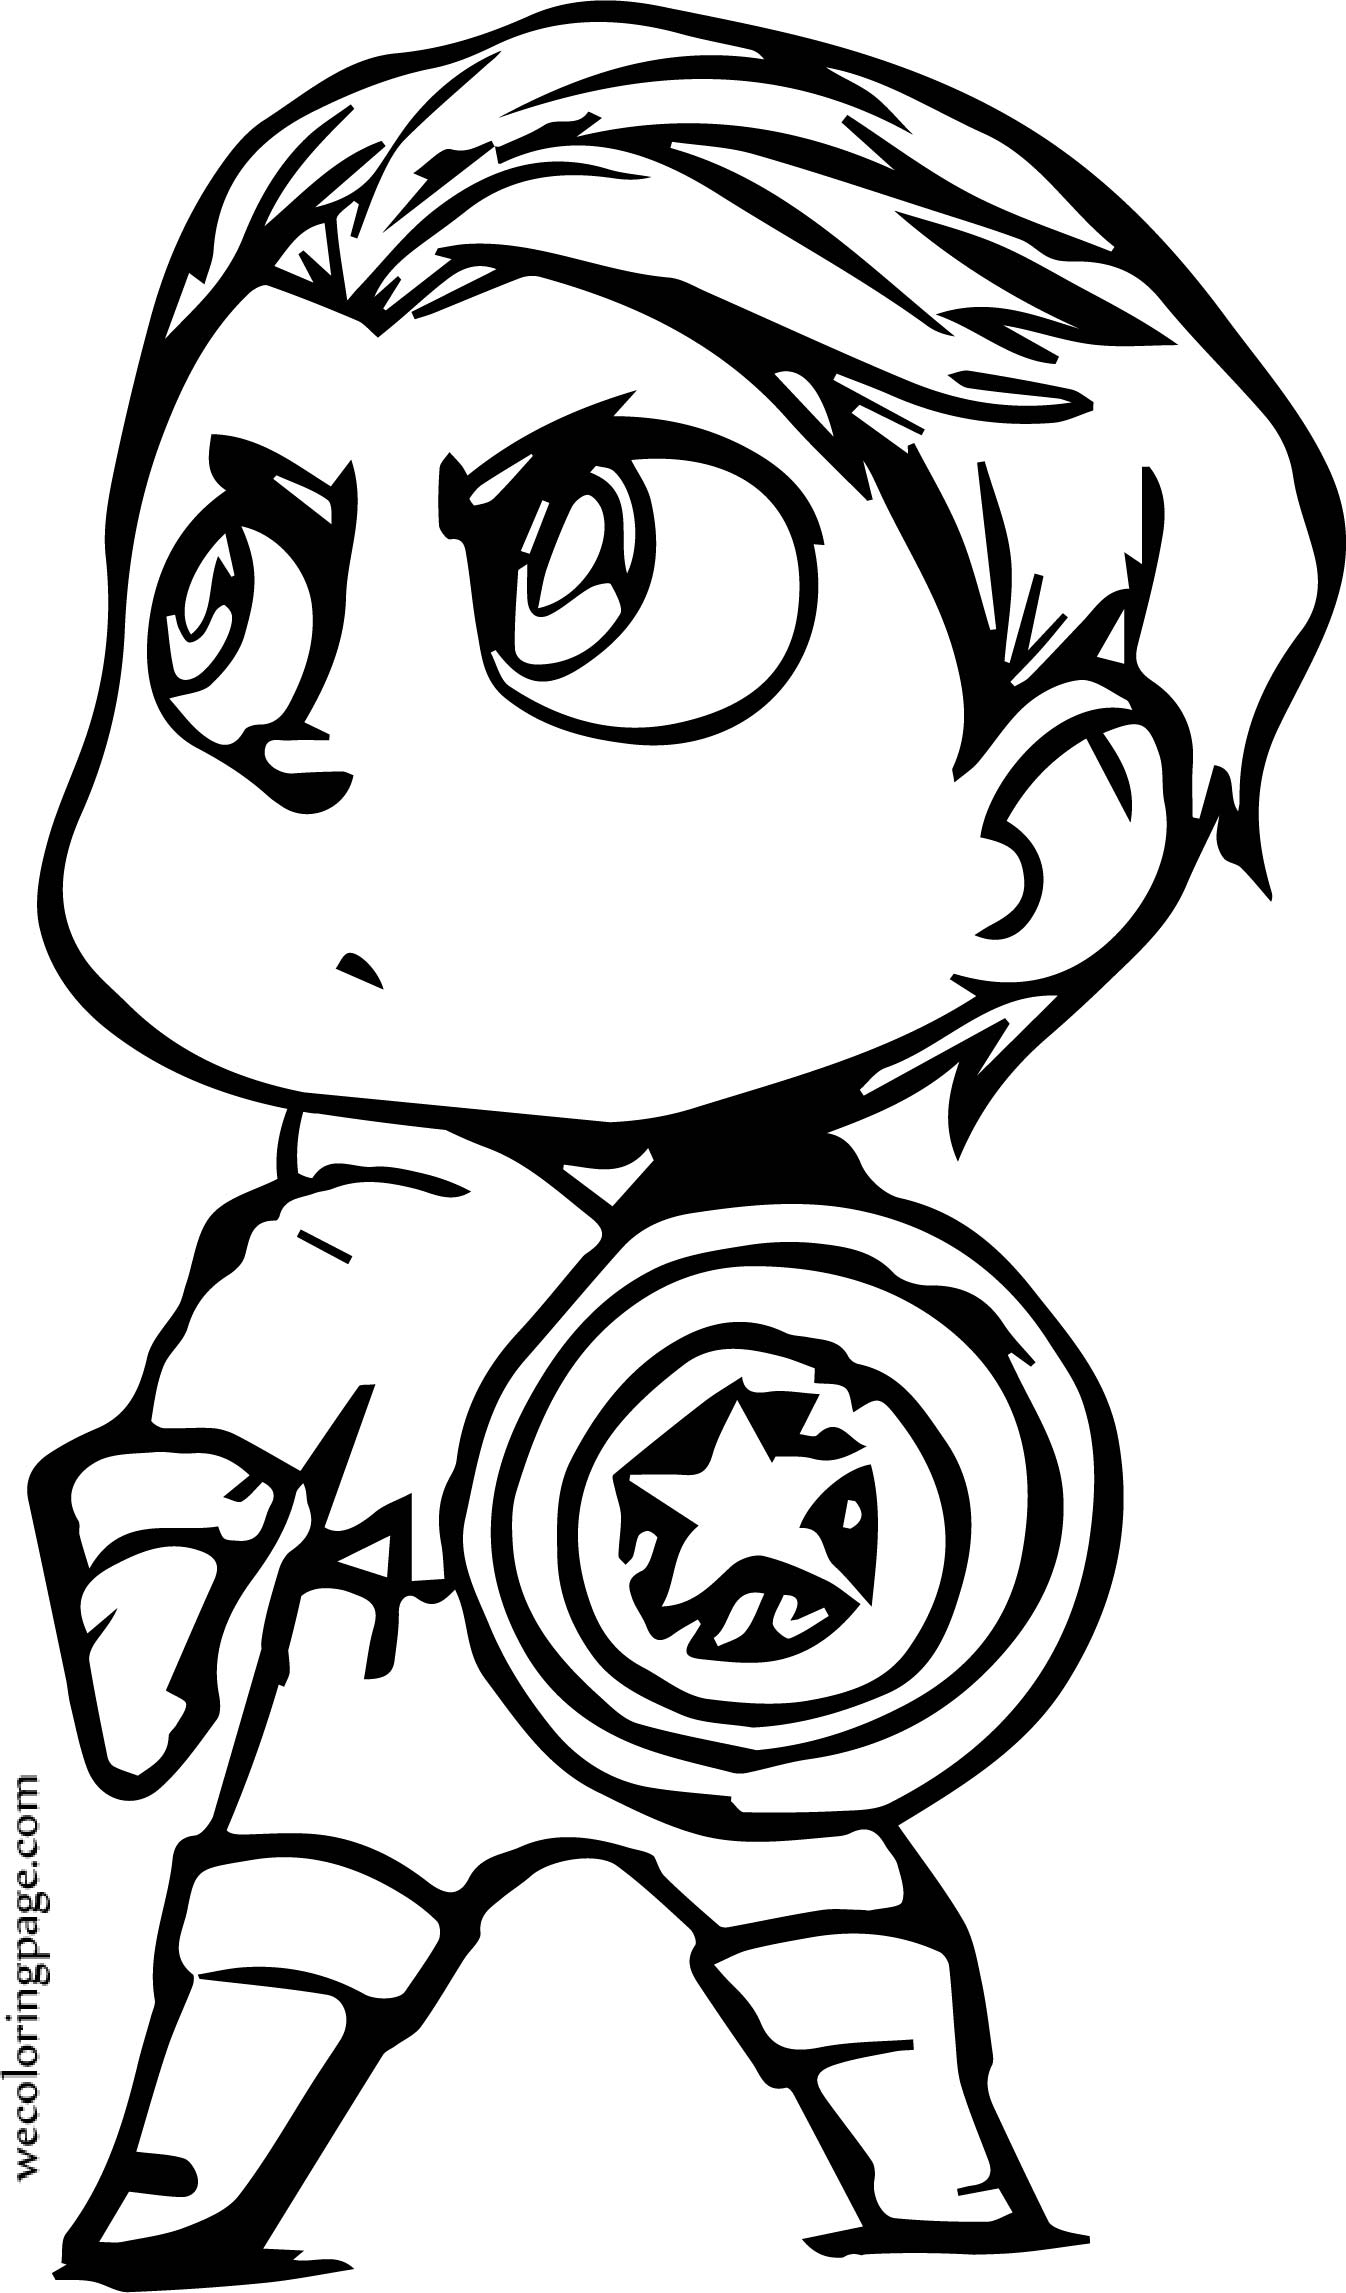 Chibi Small Captain America Coloring Page